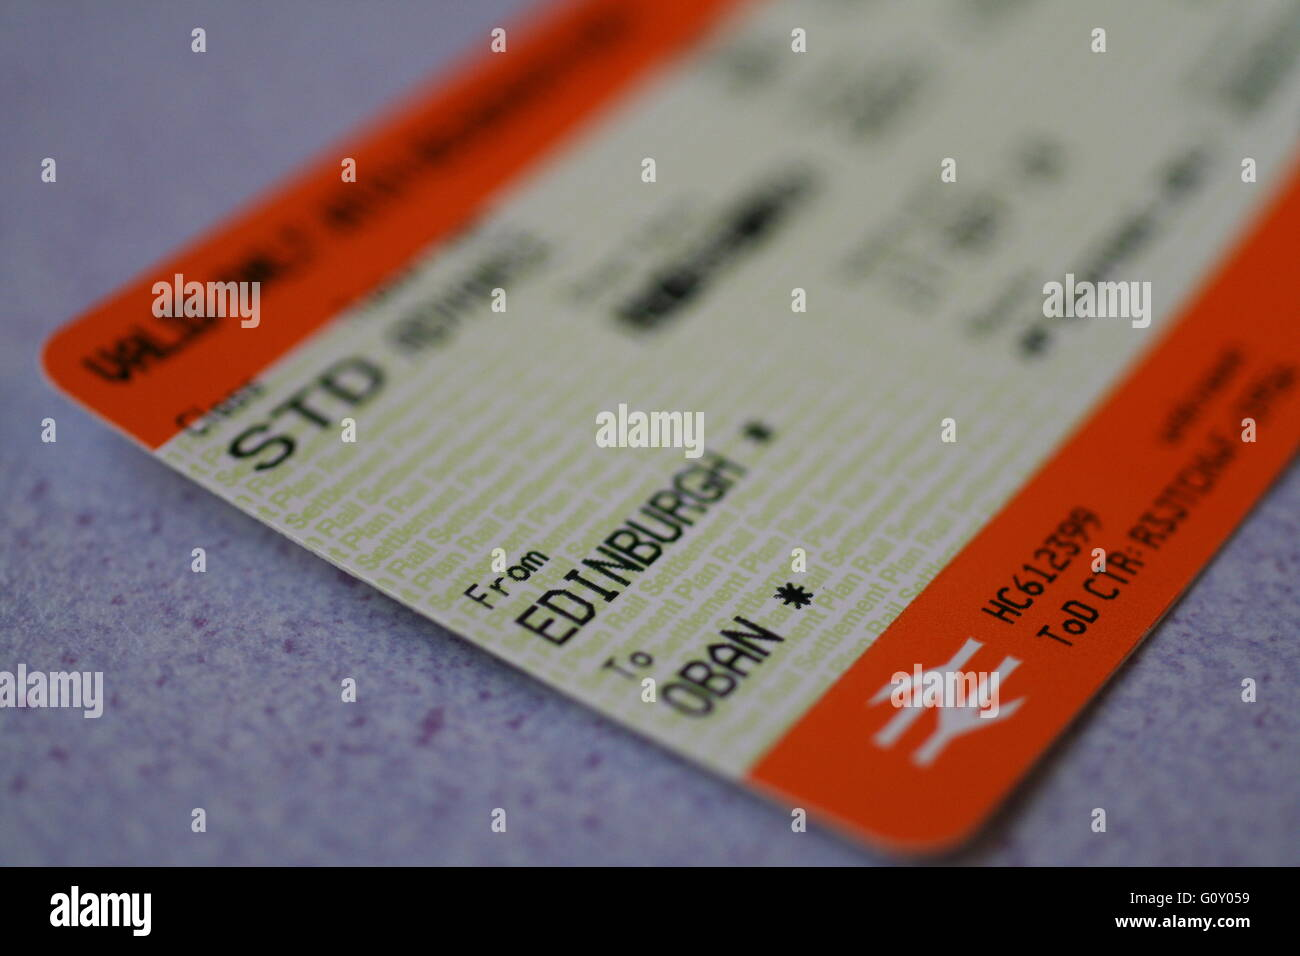 Train tickets from Edinburgh to Oban - Stock Image